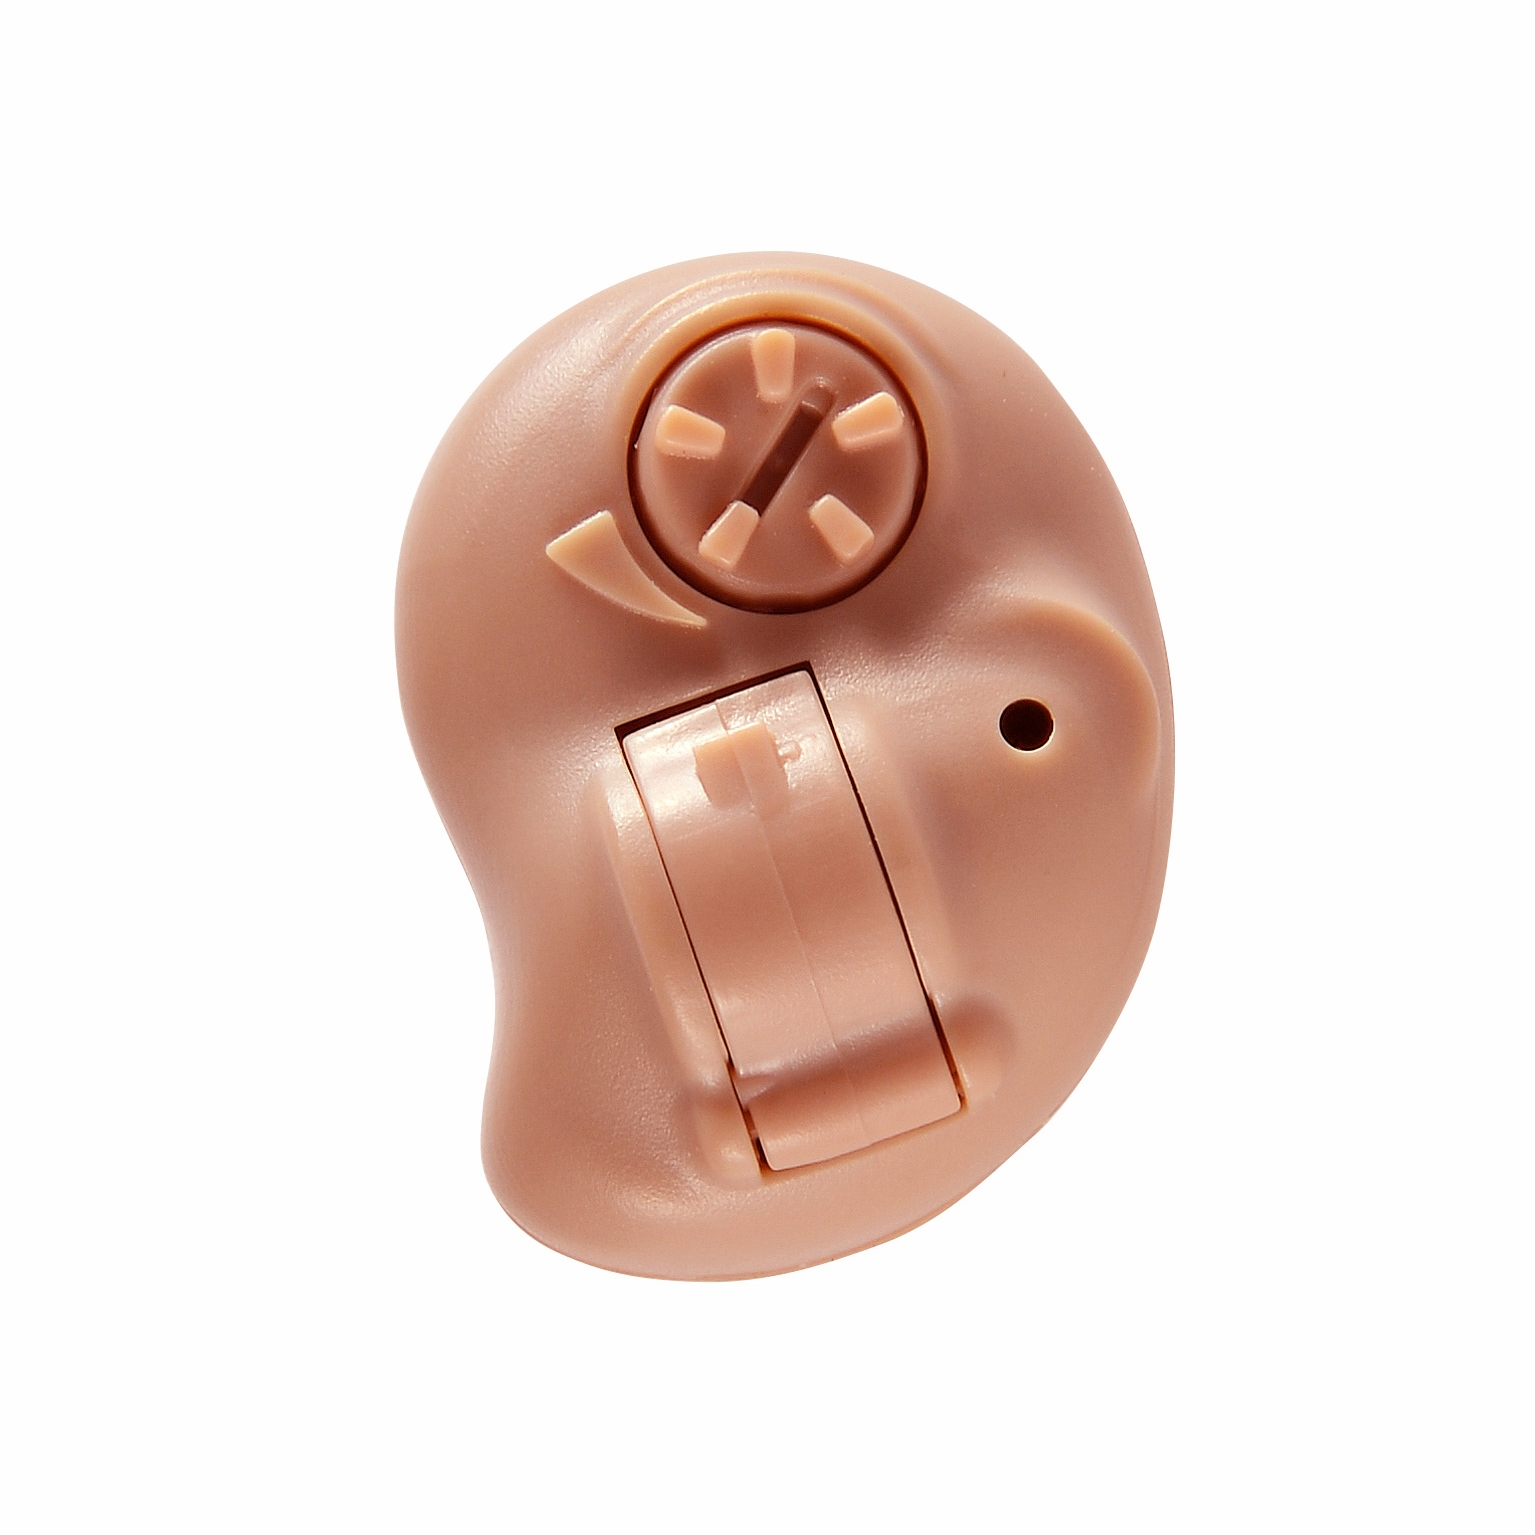 Hearing Amplifier in ear